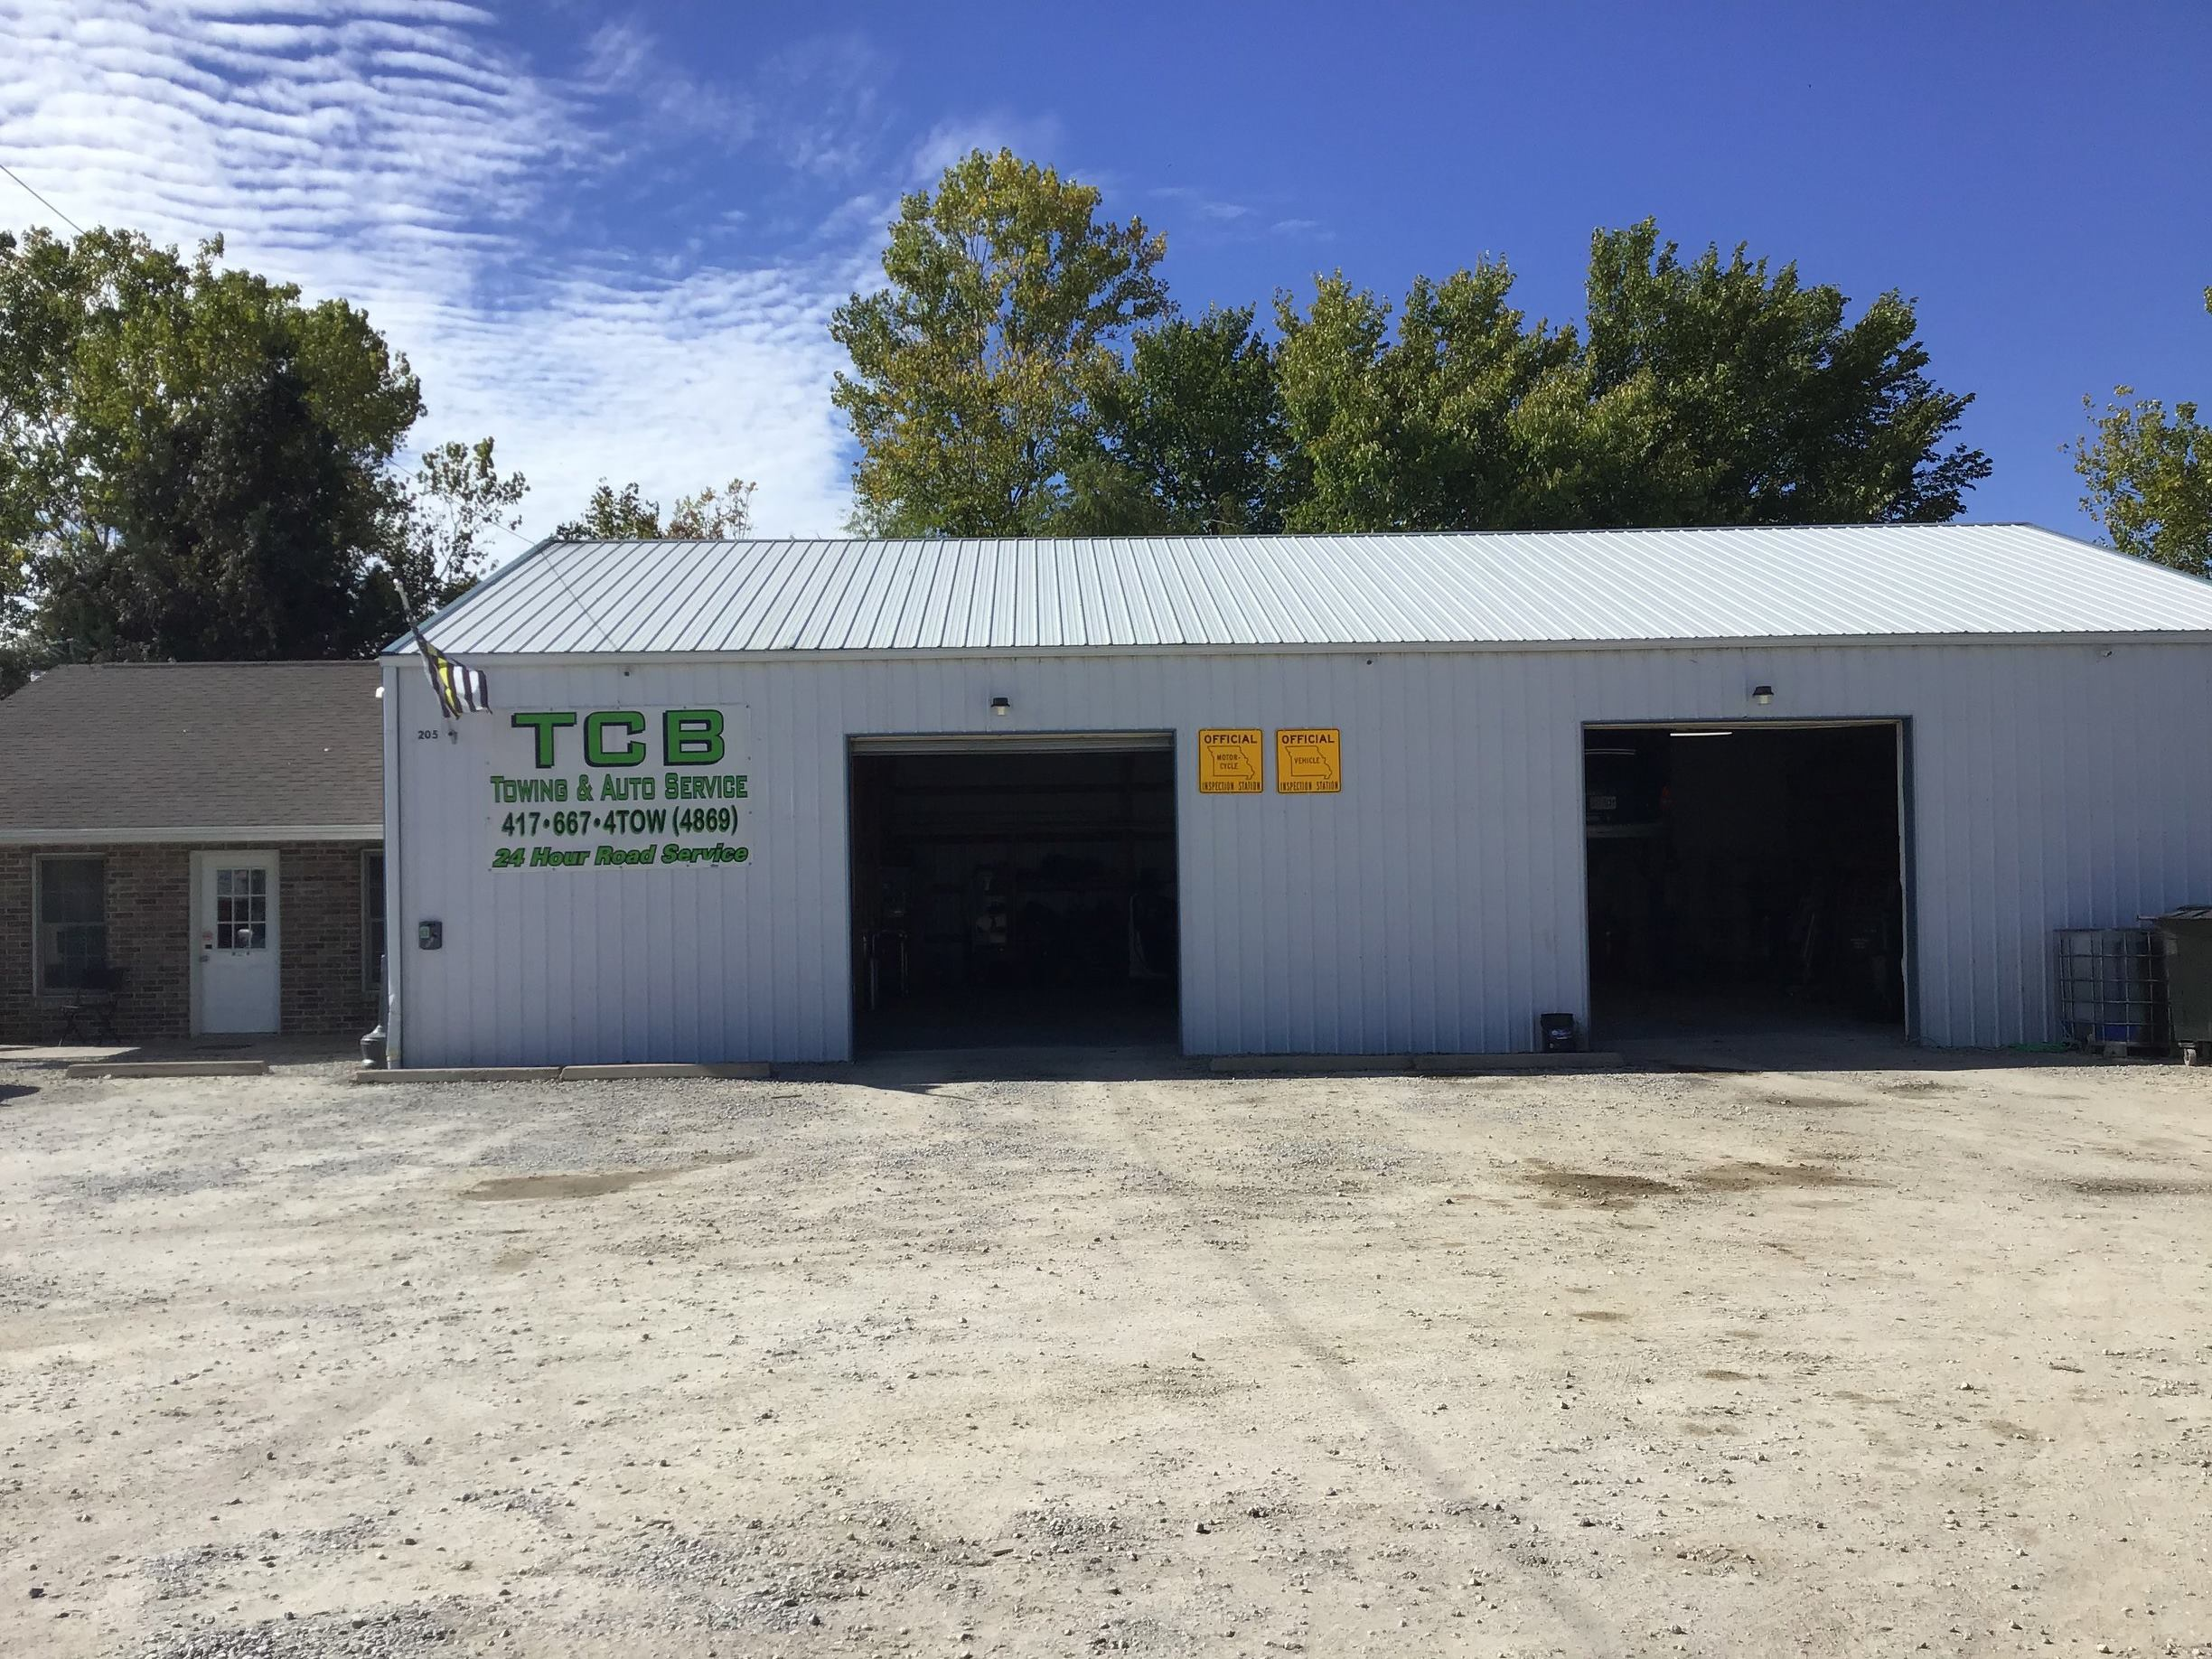 24 Hour Oil Change >> Tcb Towing And Auto Service 40 Gift Certificate To Go Towards An